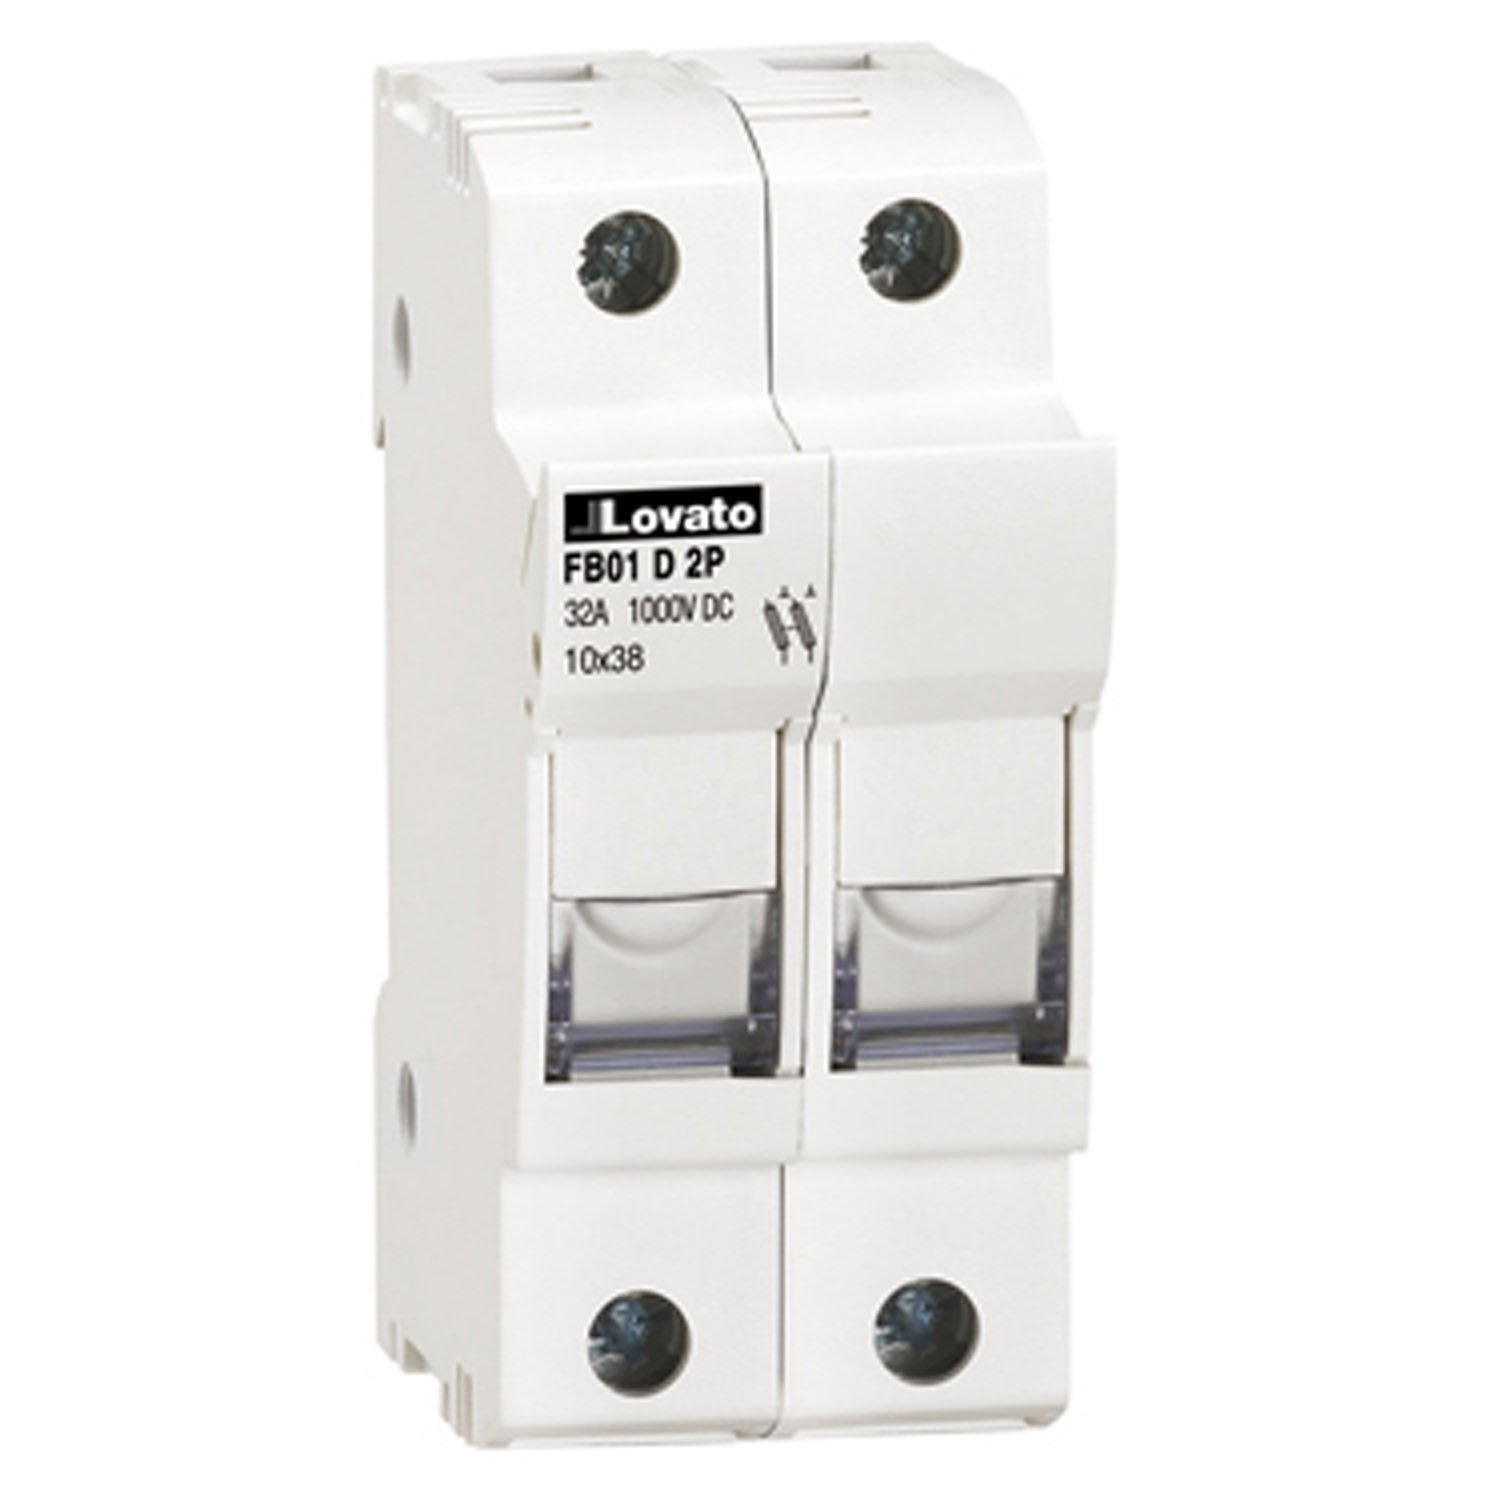 ASI AFB01D2P DIN Rail Mounted Midget Fuse Holder, 2 Pole, 10 x 38 mm, 18 to 8 AWG, 32 Amp, 1000 VDC, PV Rated